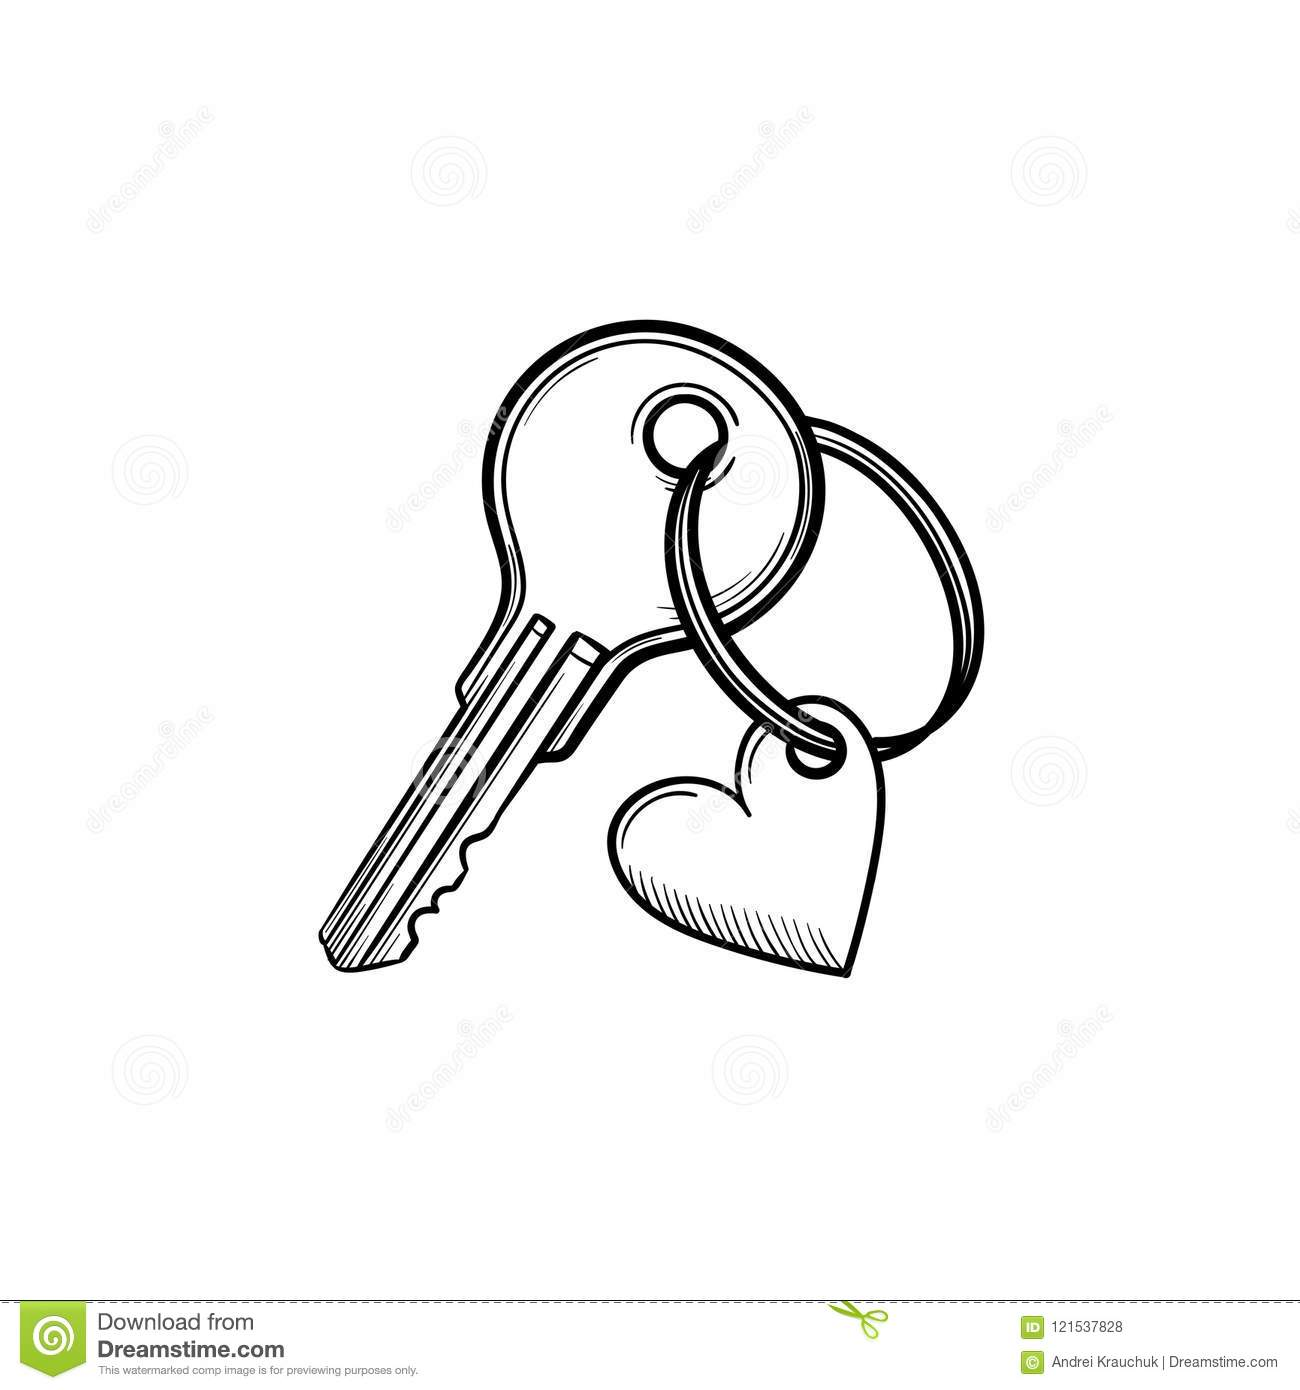 Key with heart shaped keyholder hand drawn outline doodle icon.